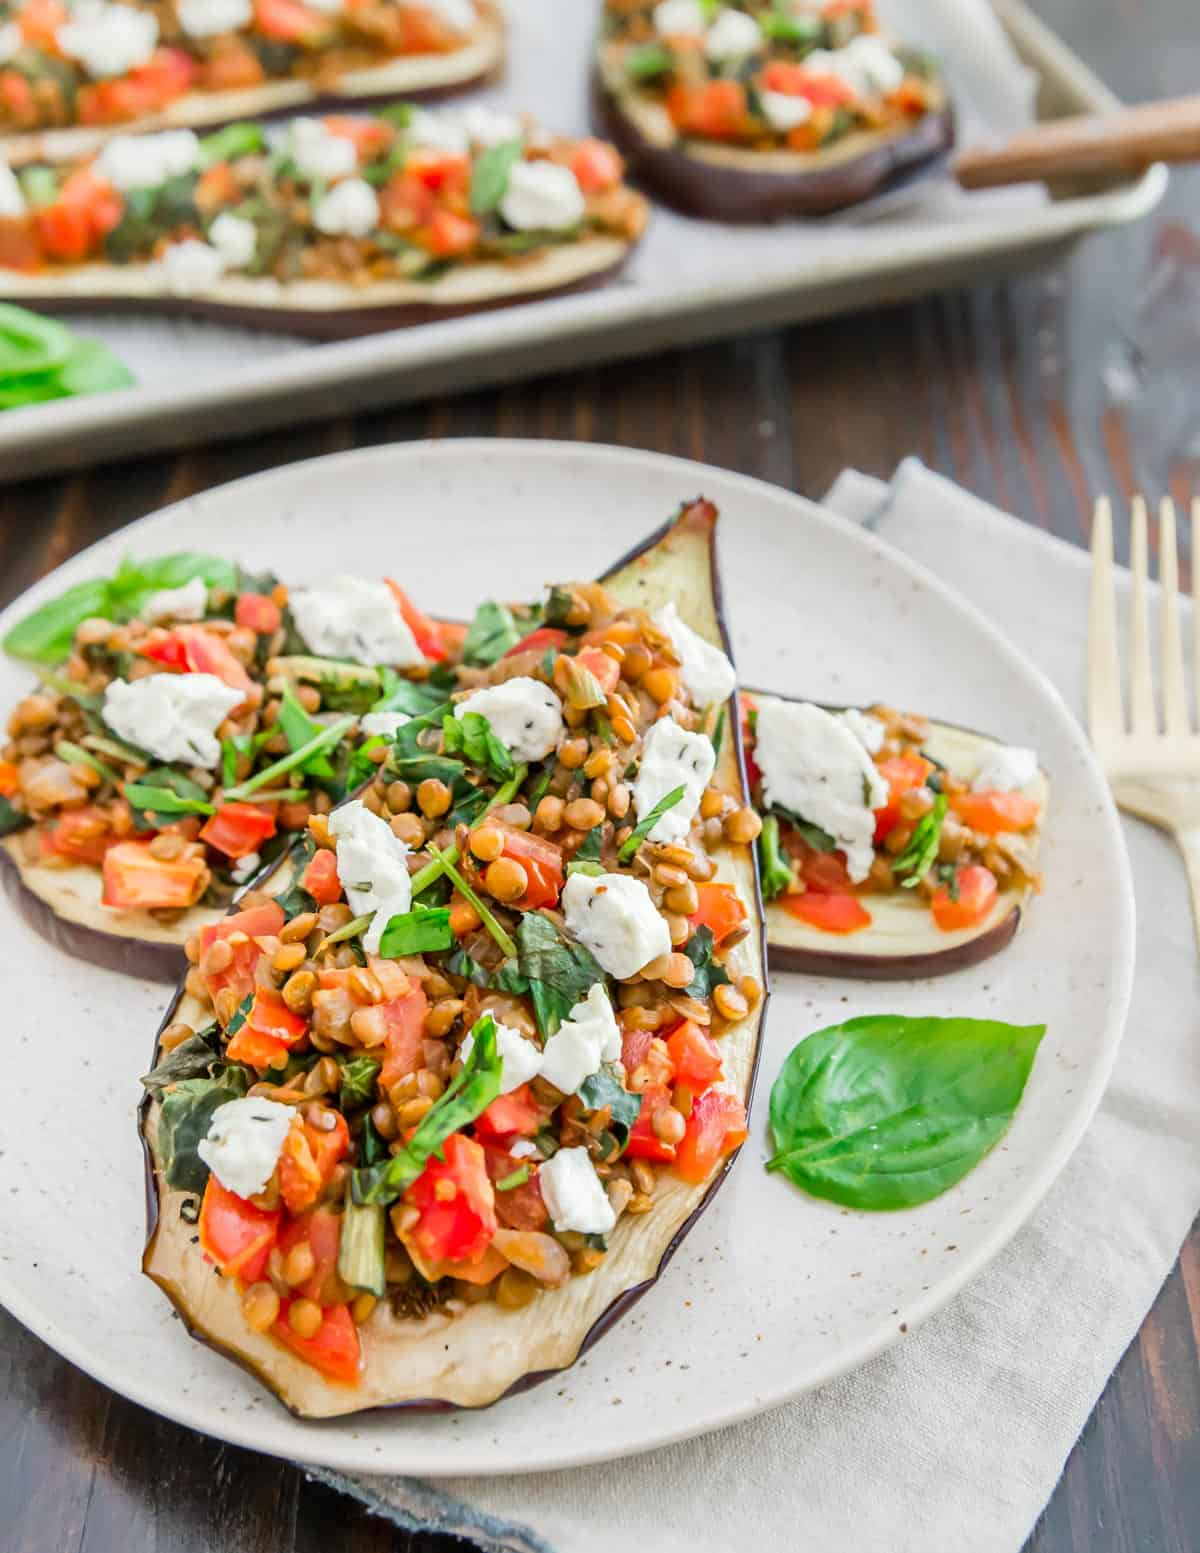 Eggplant slices stuffed with a vegetarian mixture of lentils, tomatoes, greens and goat cheese.